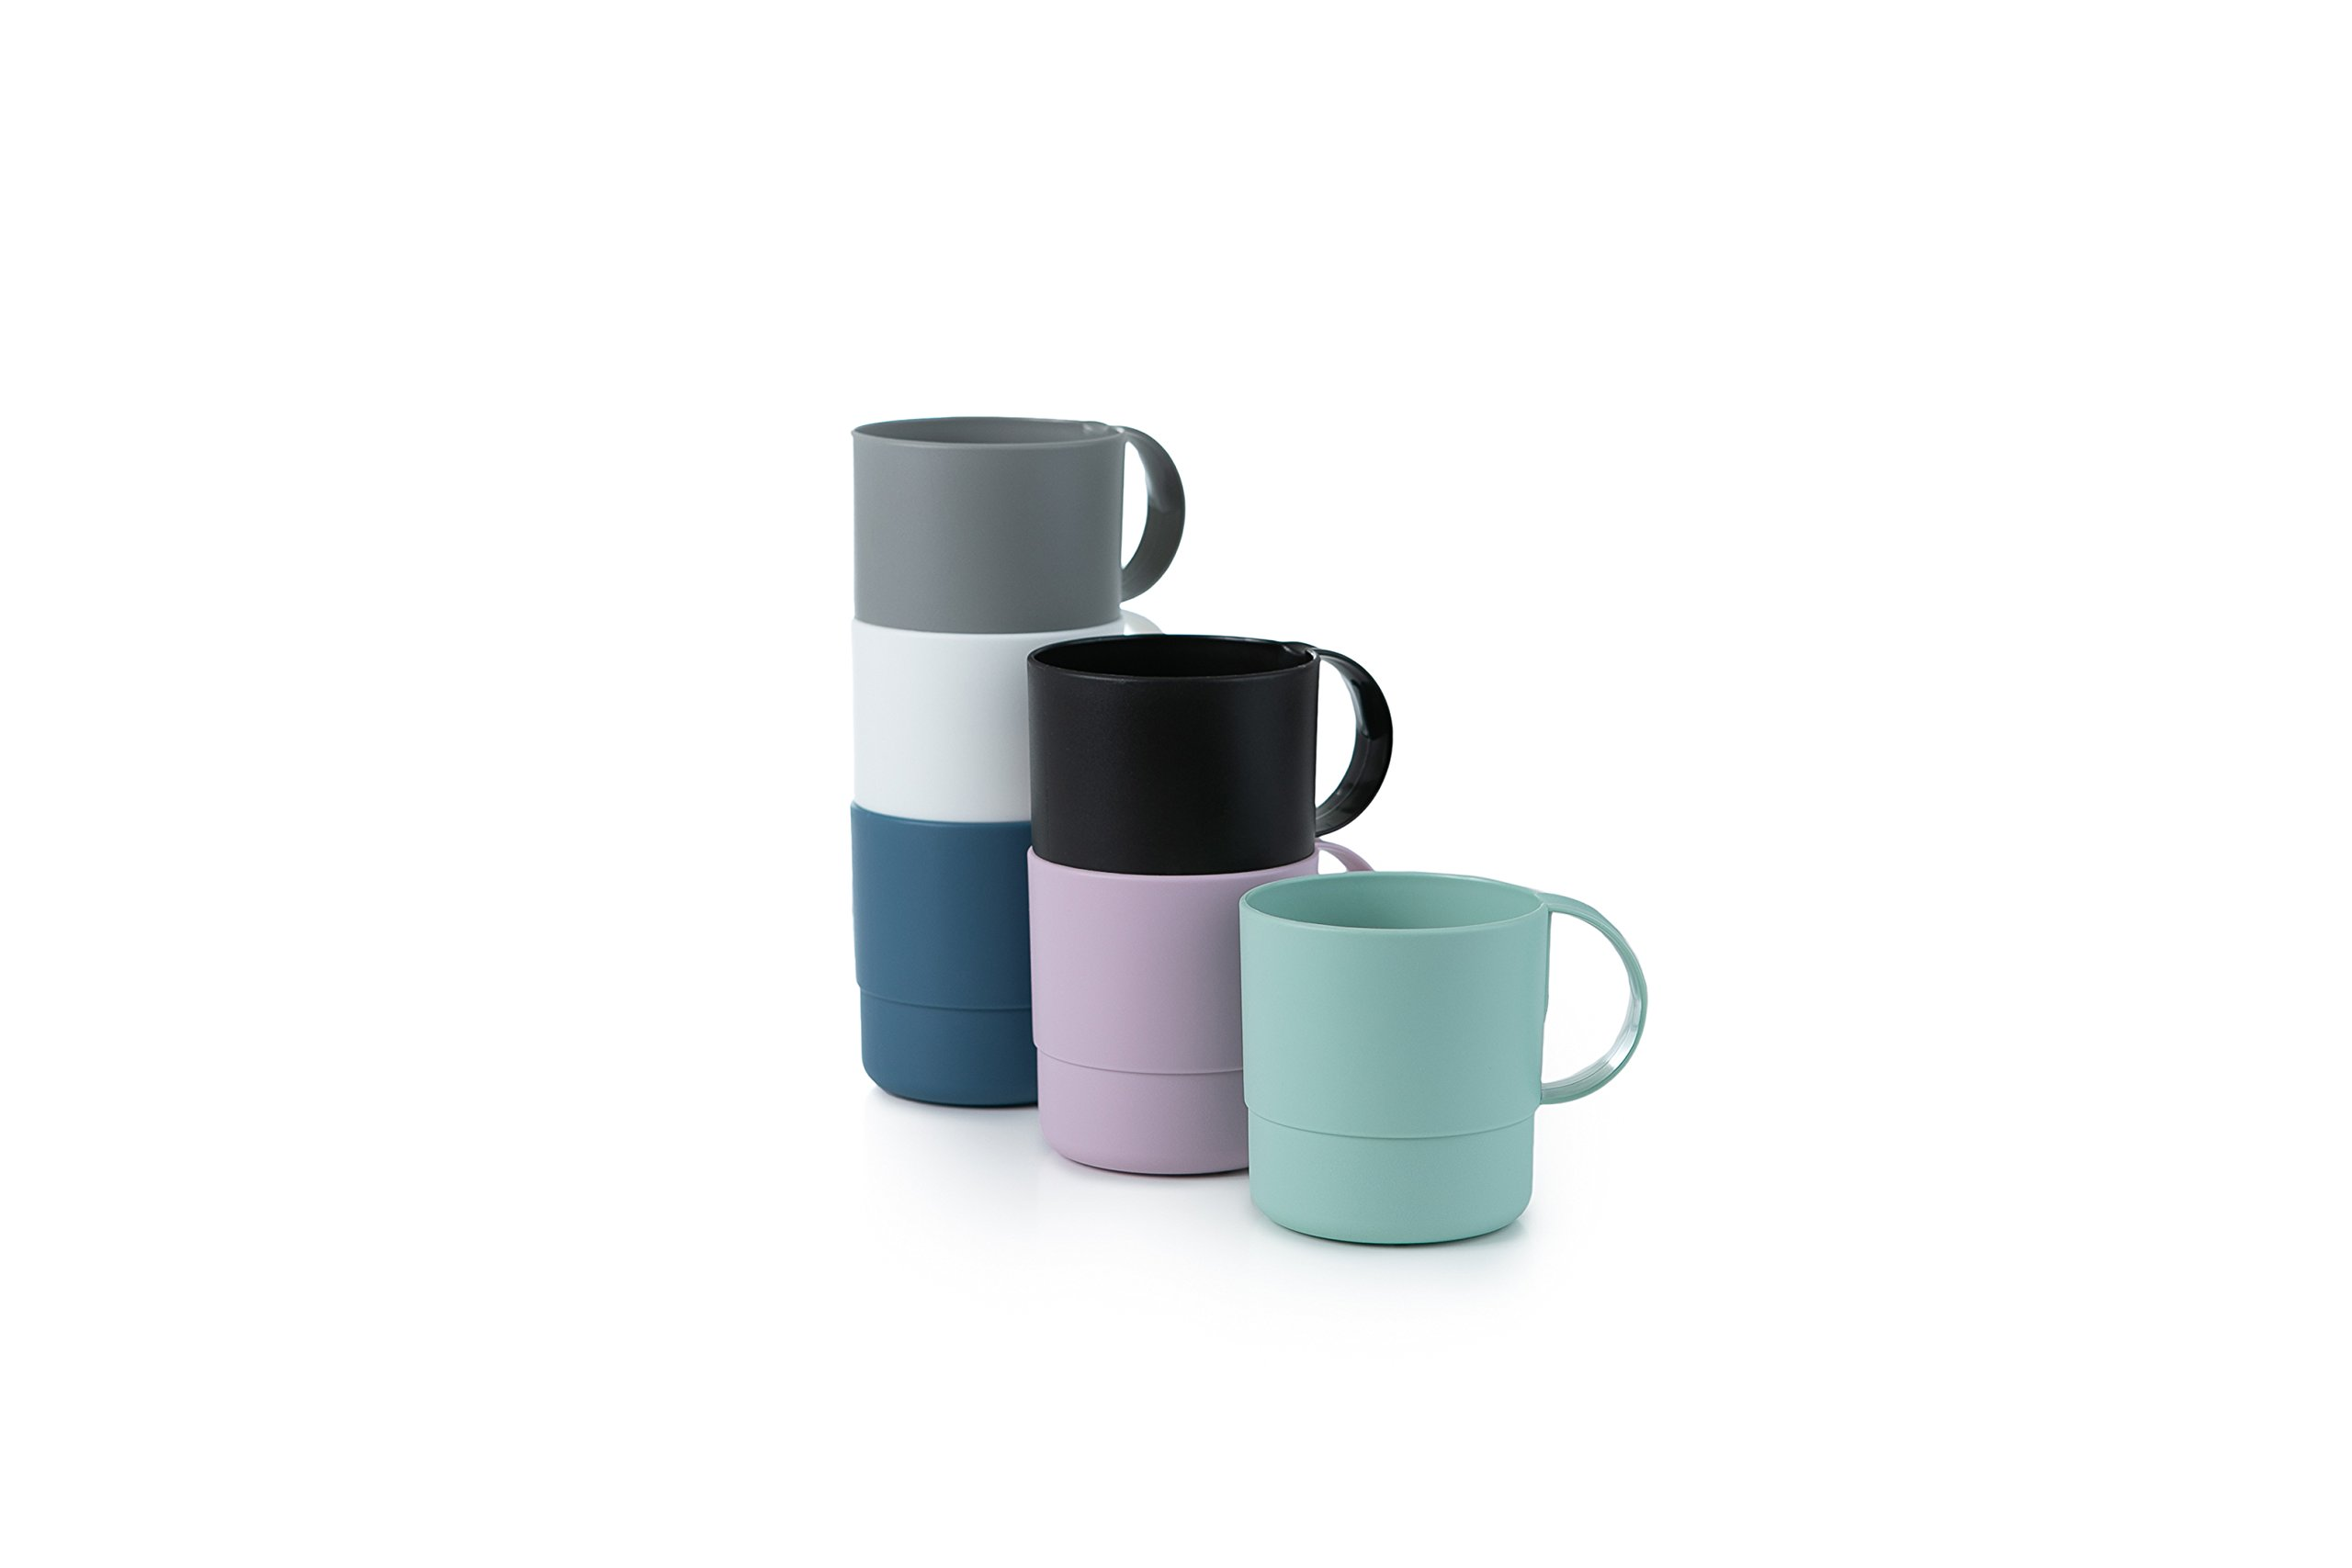 Amuse- Eco Friendly Sturdy Unbreakable & Stackable Mugs for Water, Coffee, Milk, Juice, Tea- Set of 6-11 oz (Assorted Colors) by Amuse Home (Image #2)